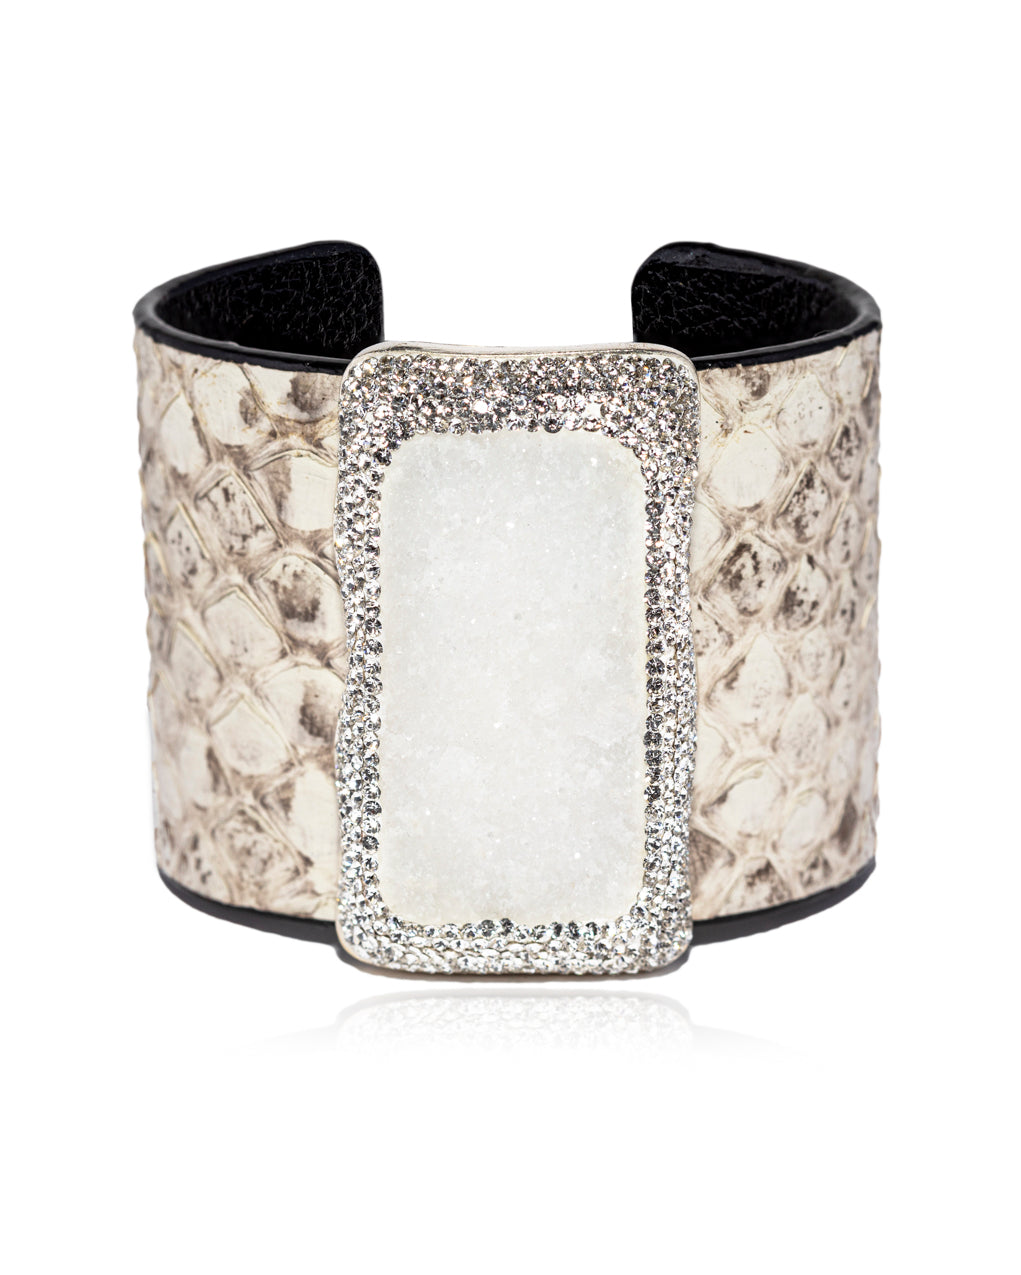 Exotic Statement Gem Cuff